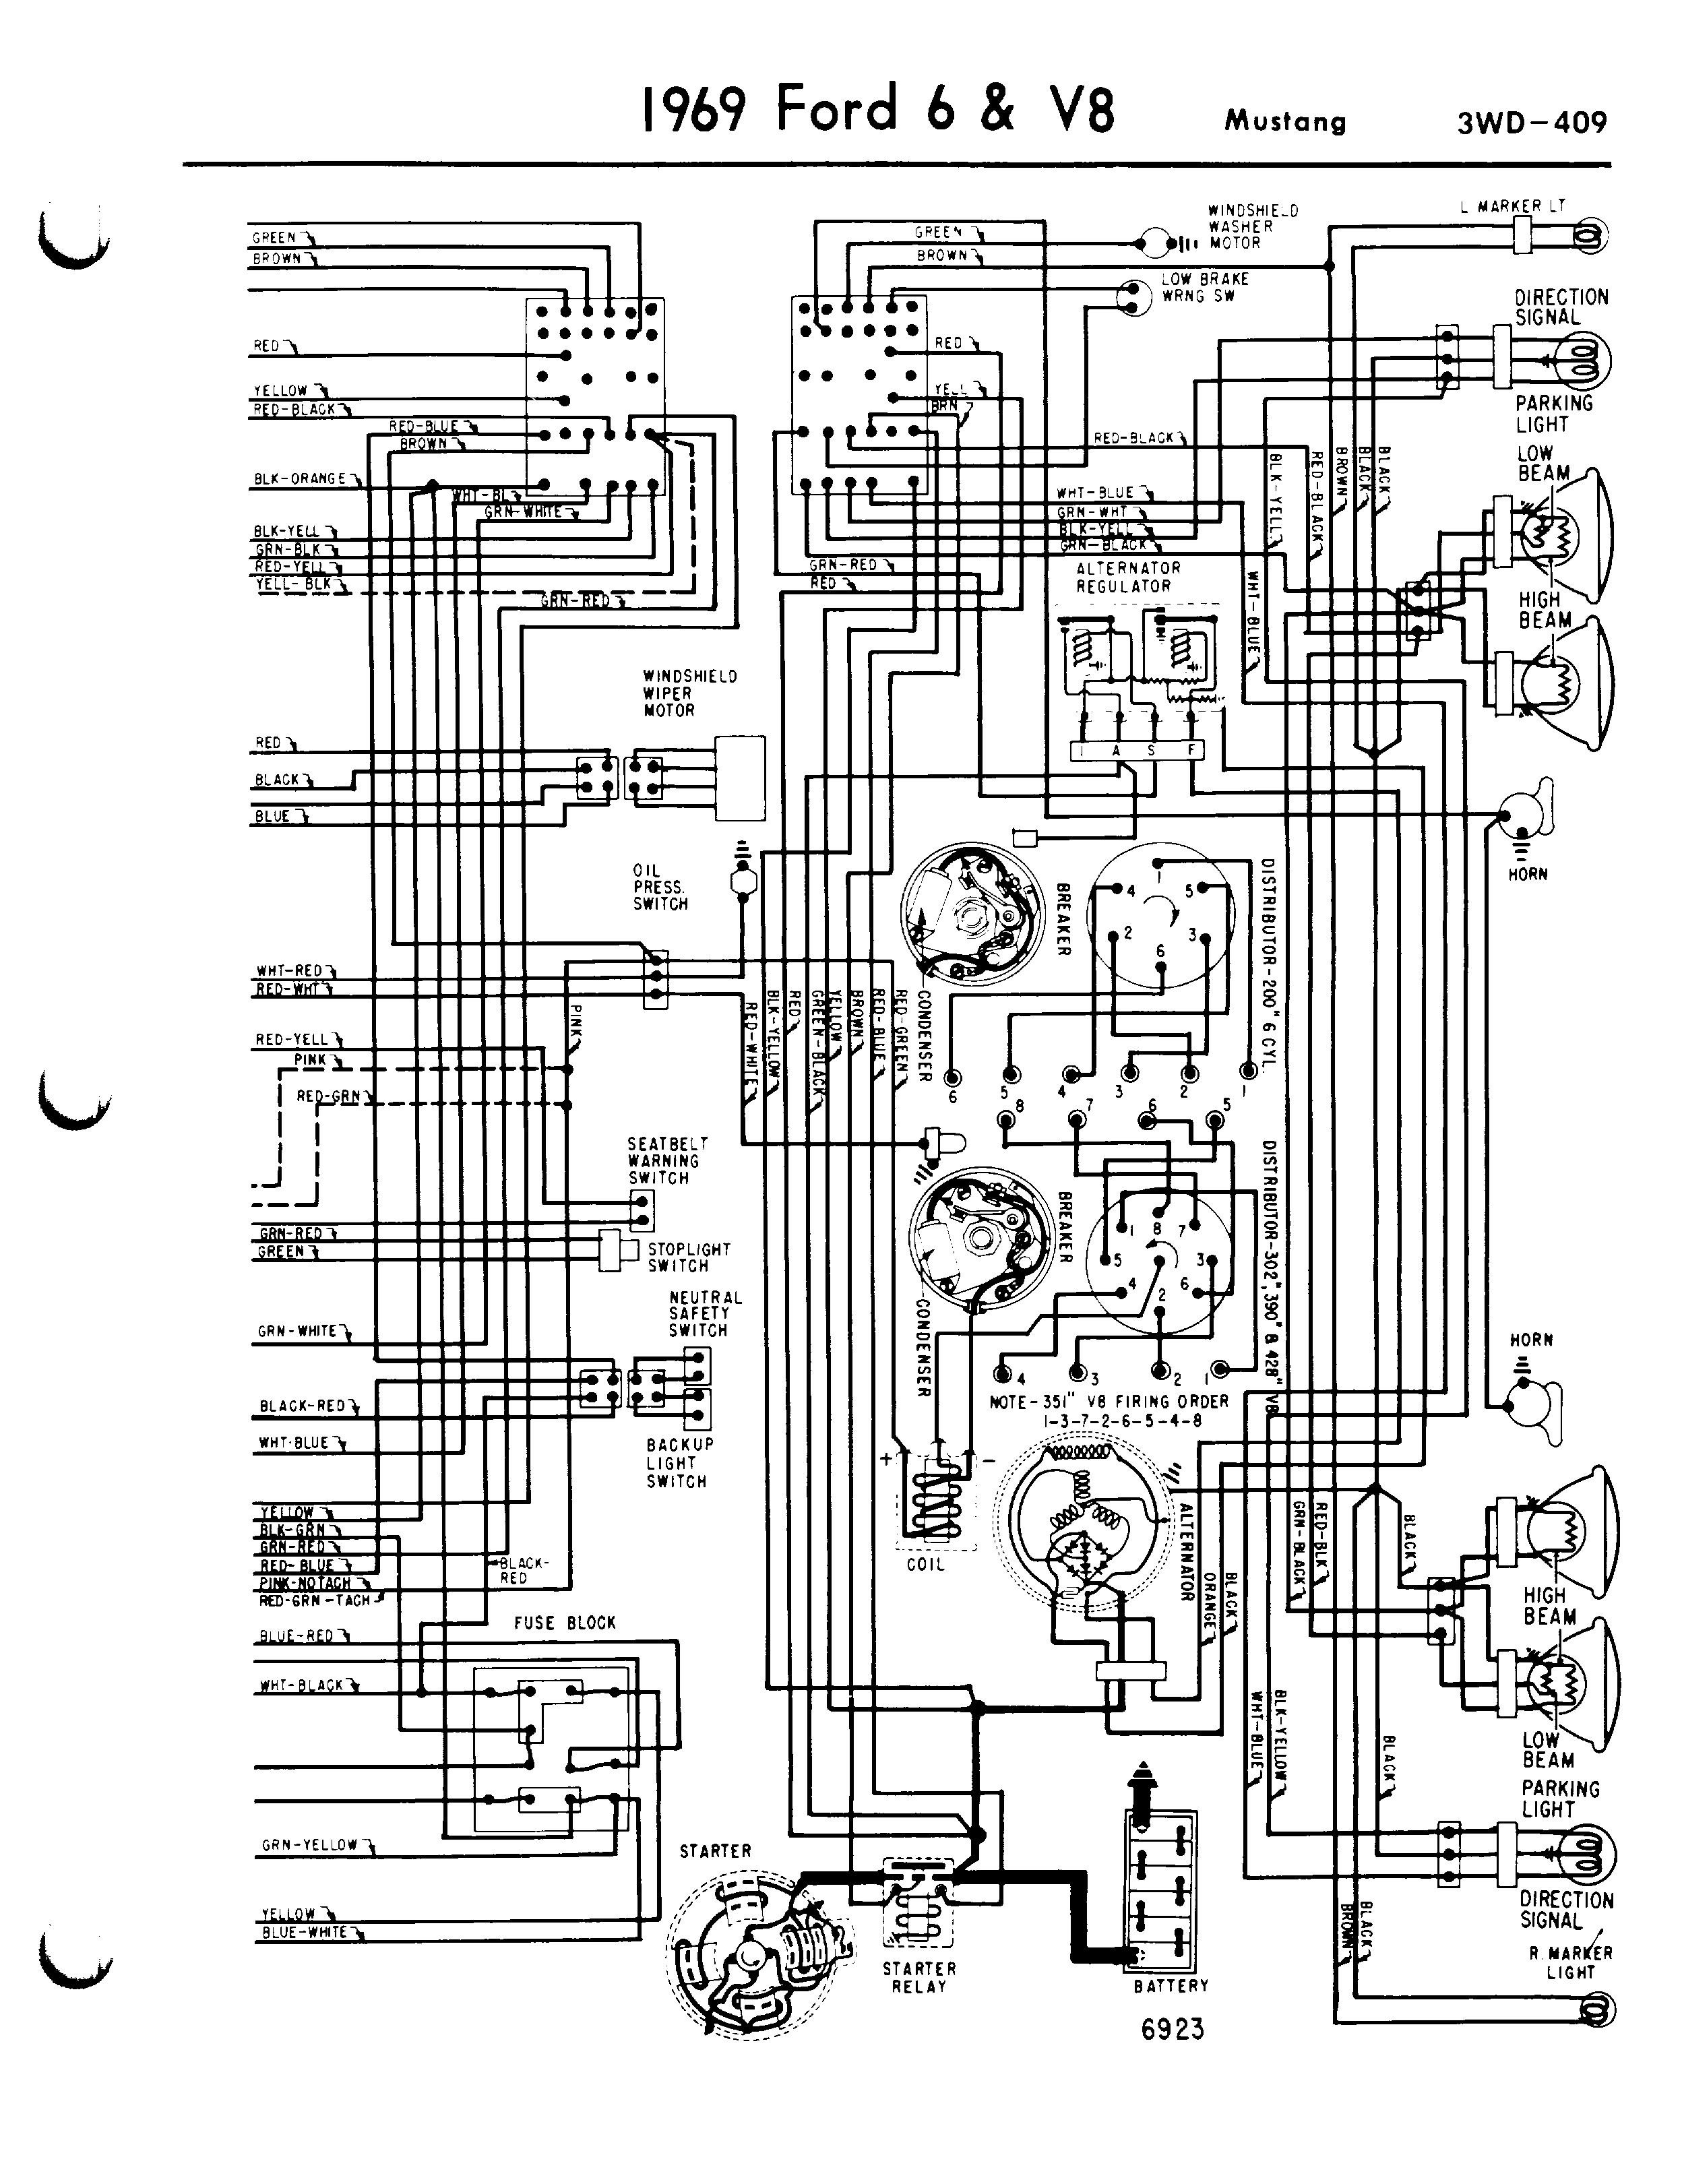 2000 Mustang Engine Diagram Wiring Diagram 1966 ford Mustang 6 V8 3wd 235  Schematic for Alluring